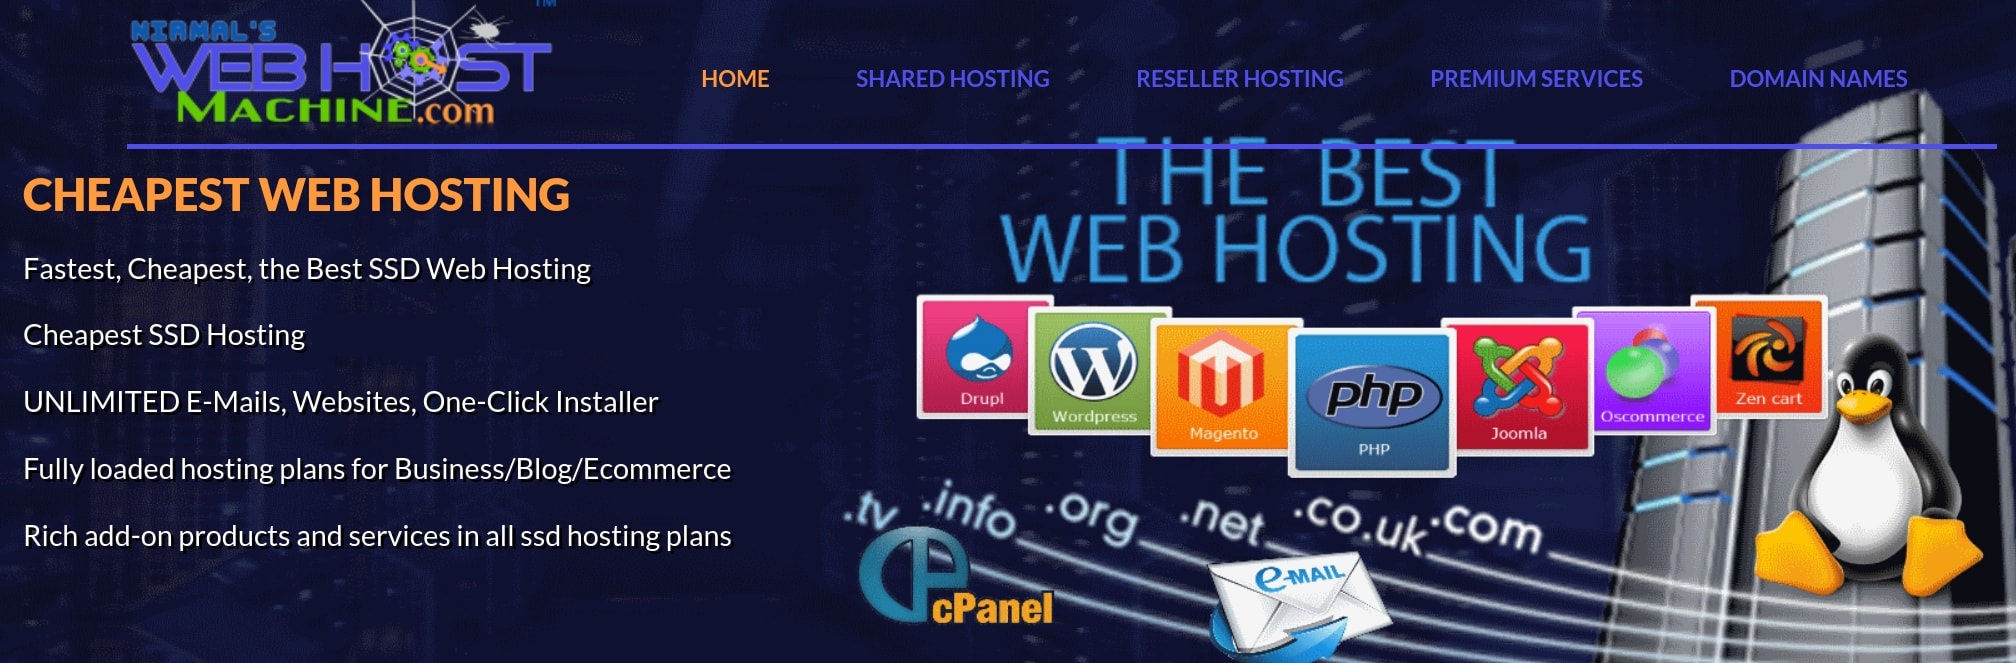 Web-Host-Machine-overview1